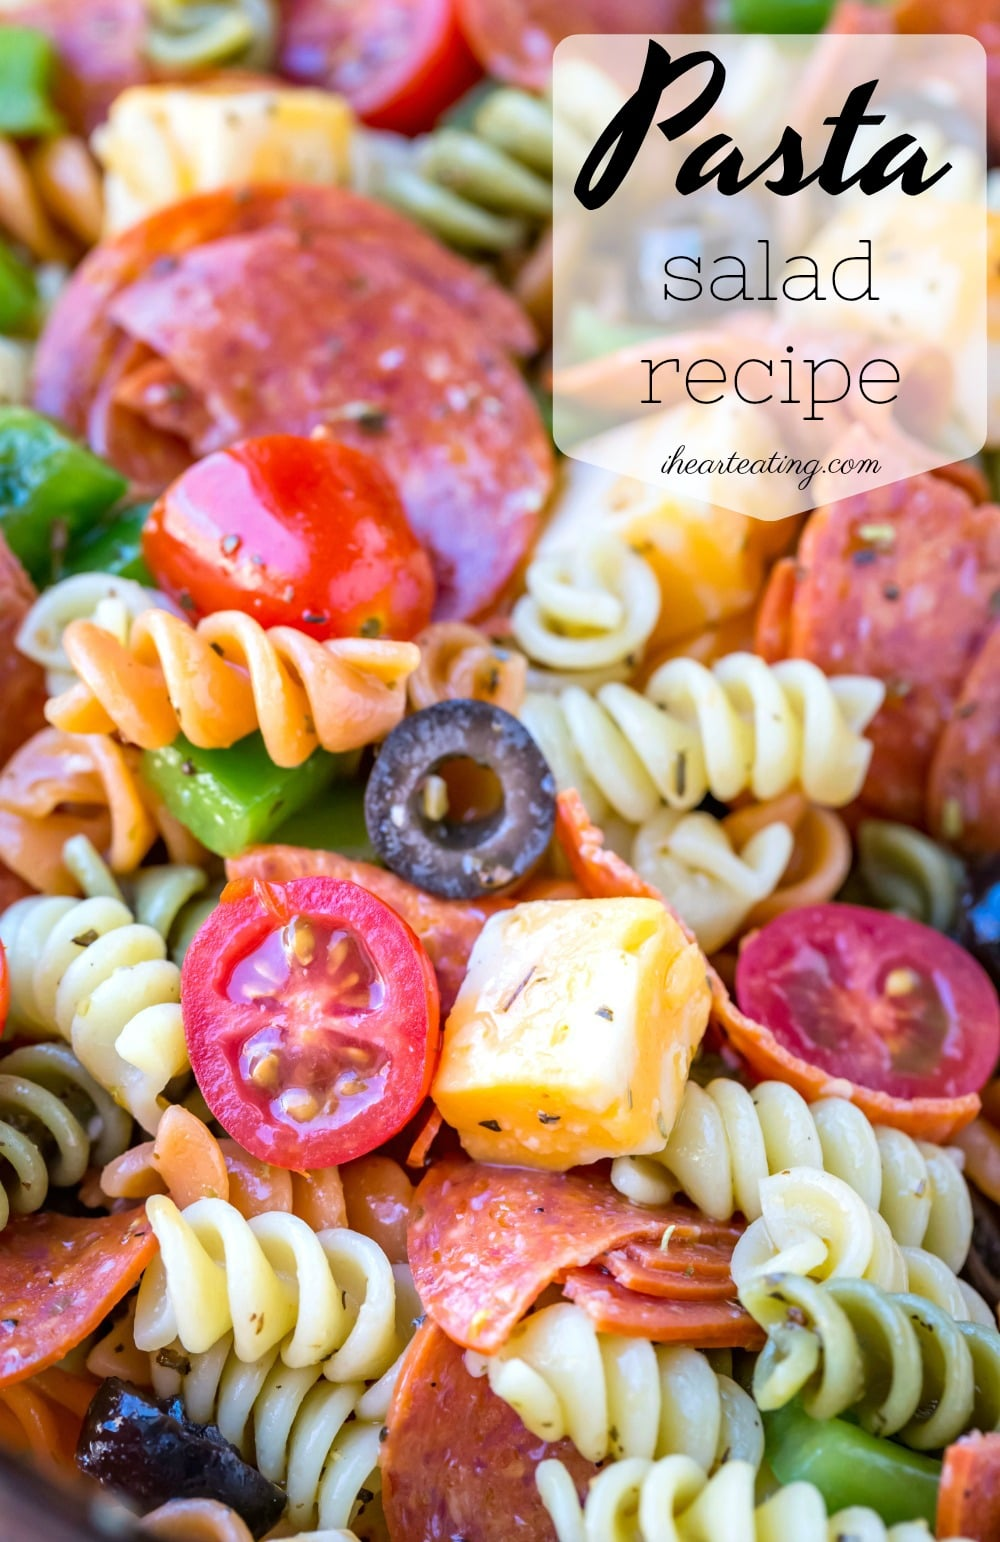 Best pasta salad recipe! This easy pasta salad takes simple ingredients like vegetables, cheese, and pepperoni, and a homemade Italian dressing and turns them into the perfect side dish! #pastasalad #recipe #side #sidedish